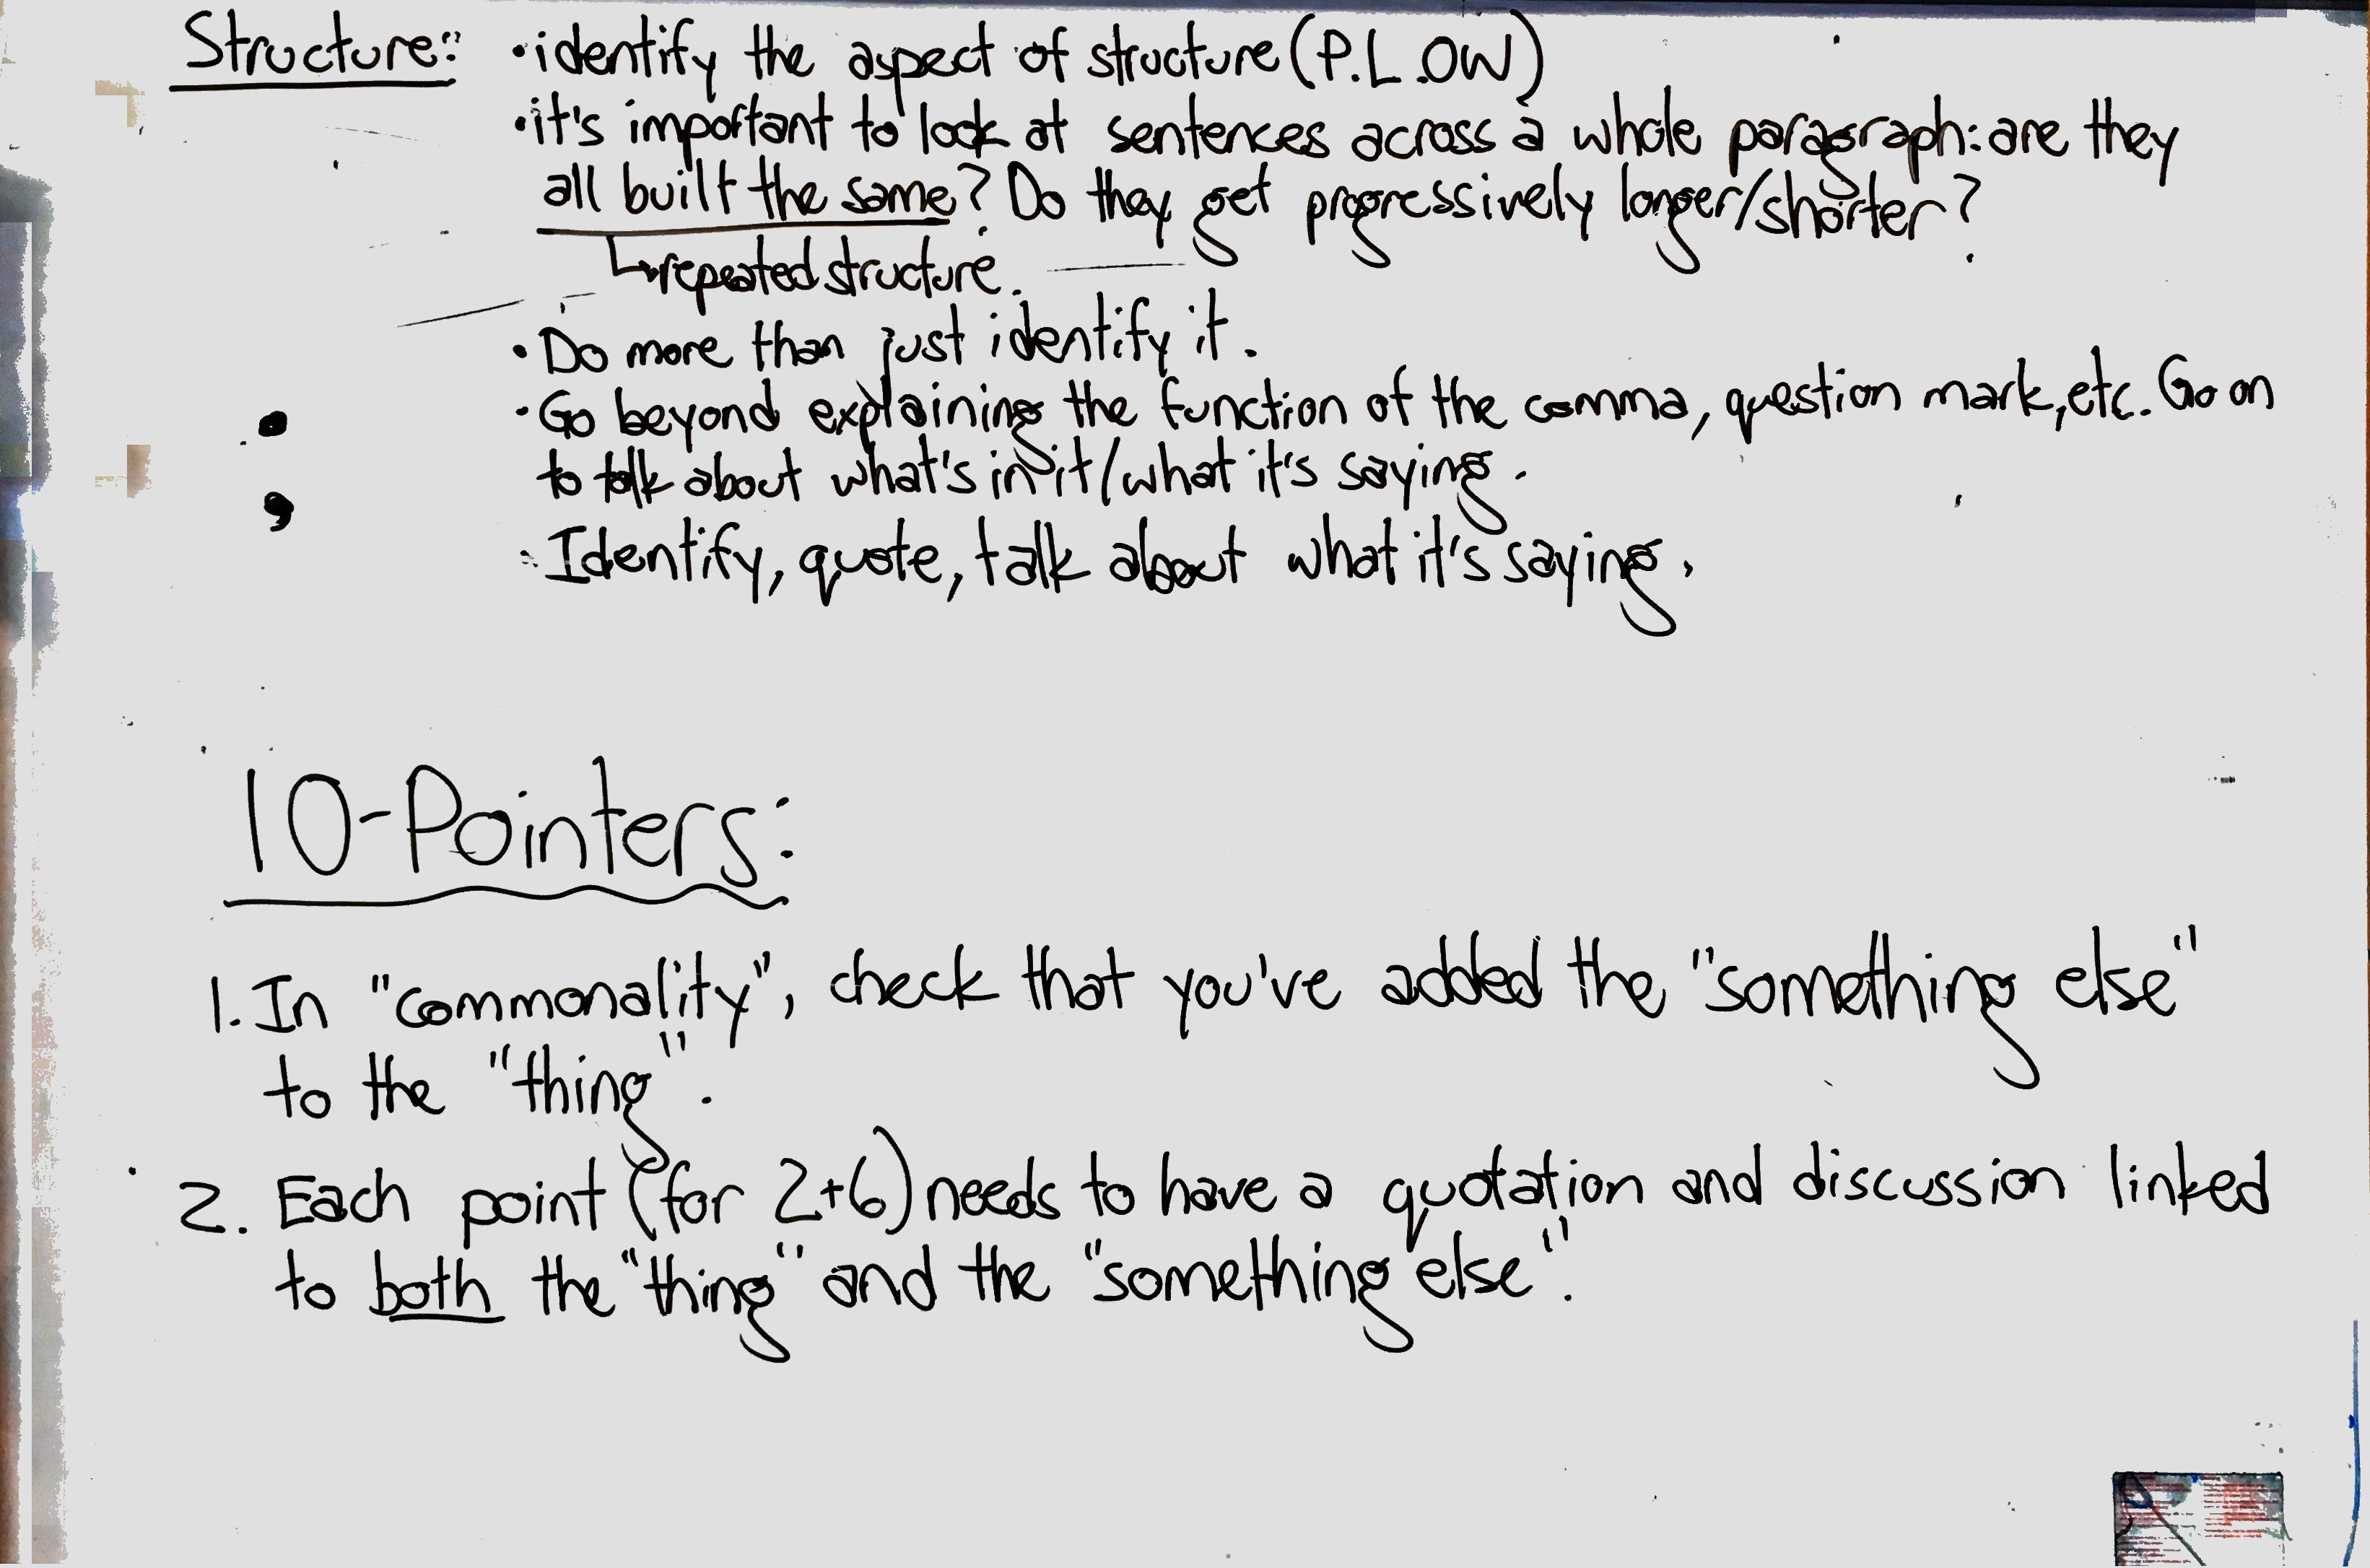 Tone, Conclusions, Structure, 10-pointers